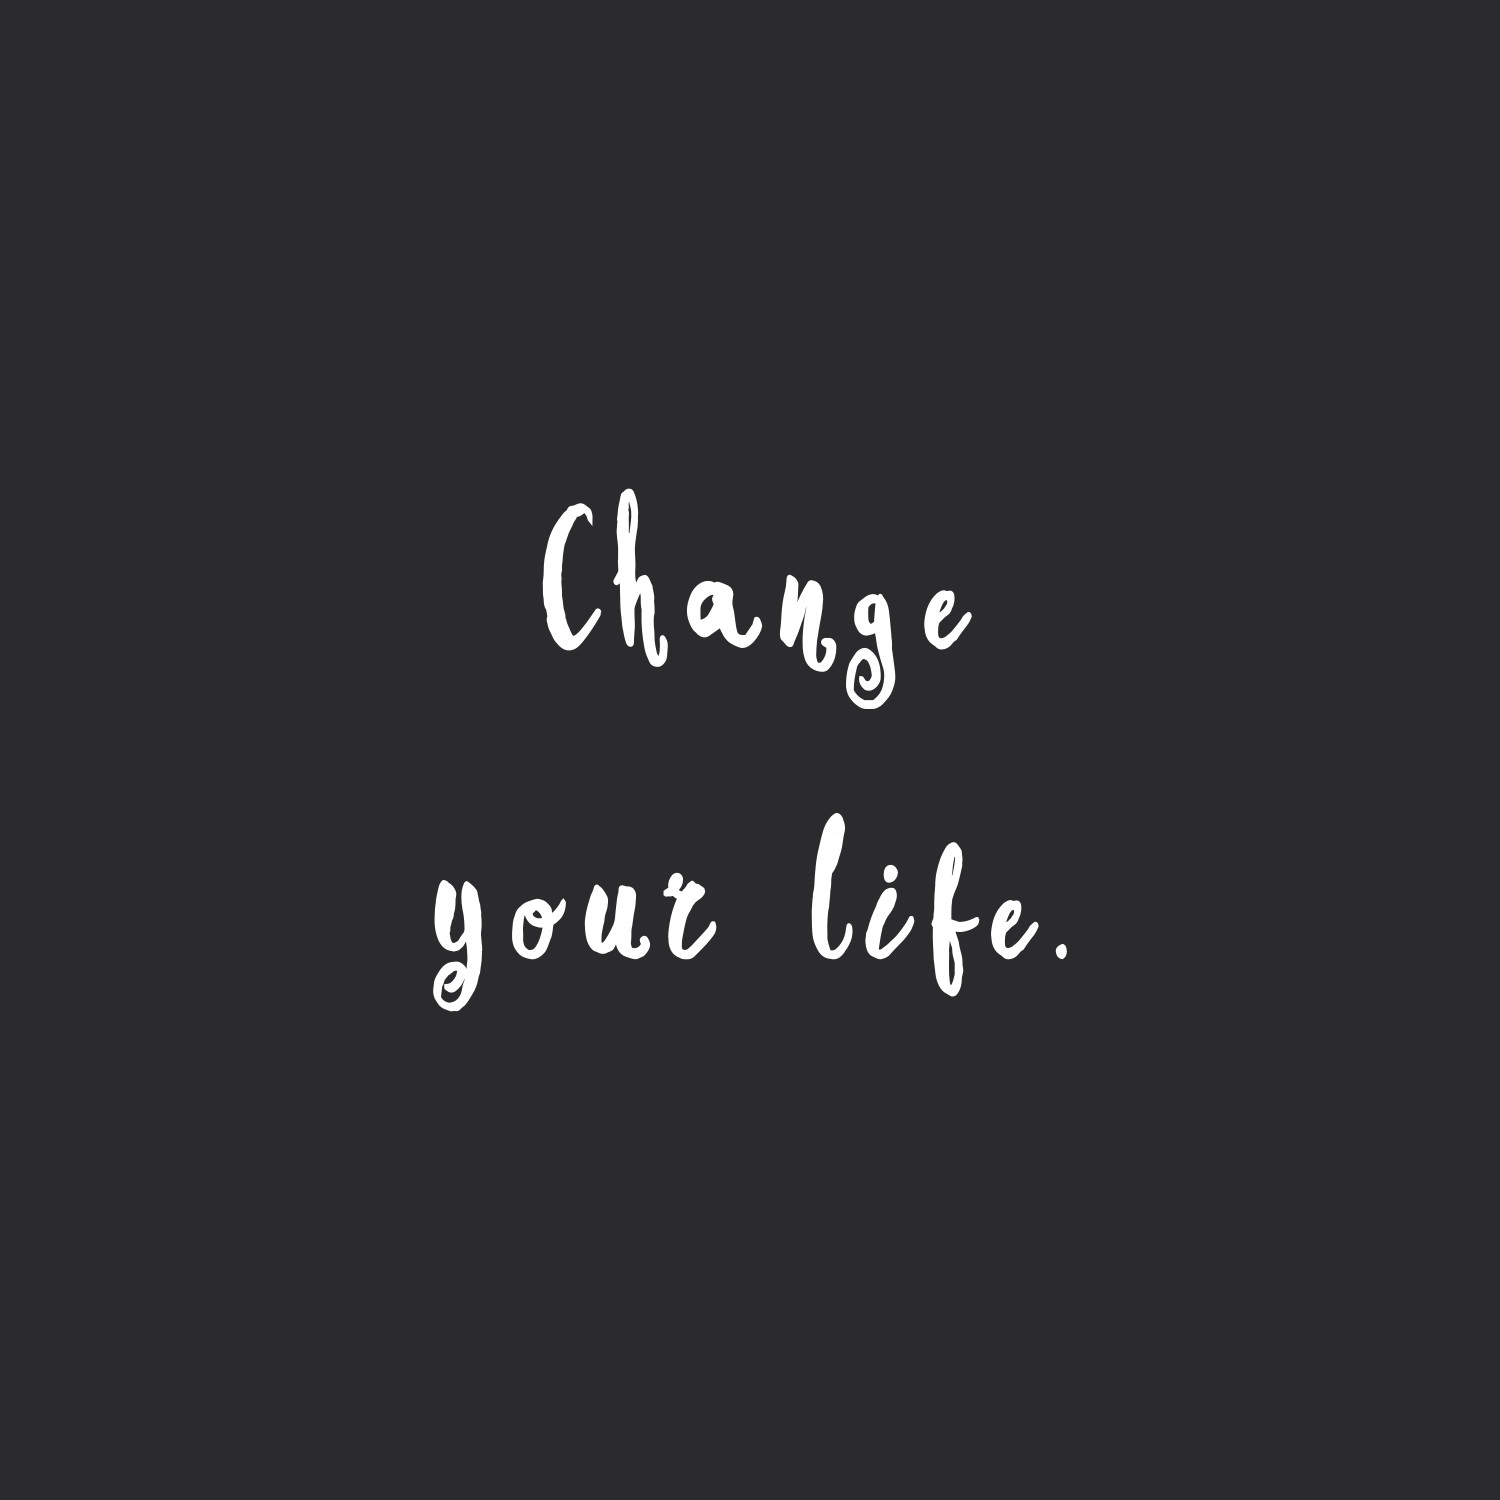 Change your life! Browse our collection of exercise and fitness inspirational quotes and get instant weight loss and training motivation. Transform positive thoughts into positive actions and get fit, healthy and happy! https://www.spotebi.com/workout-motivation/change-your-life/